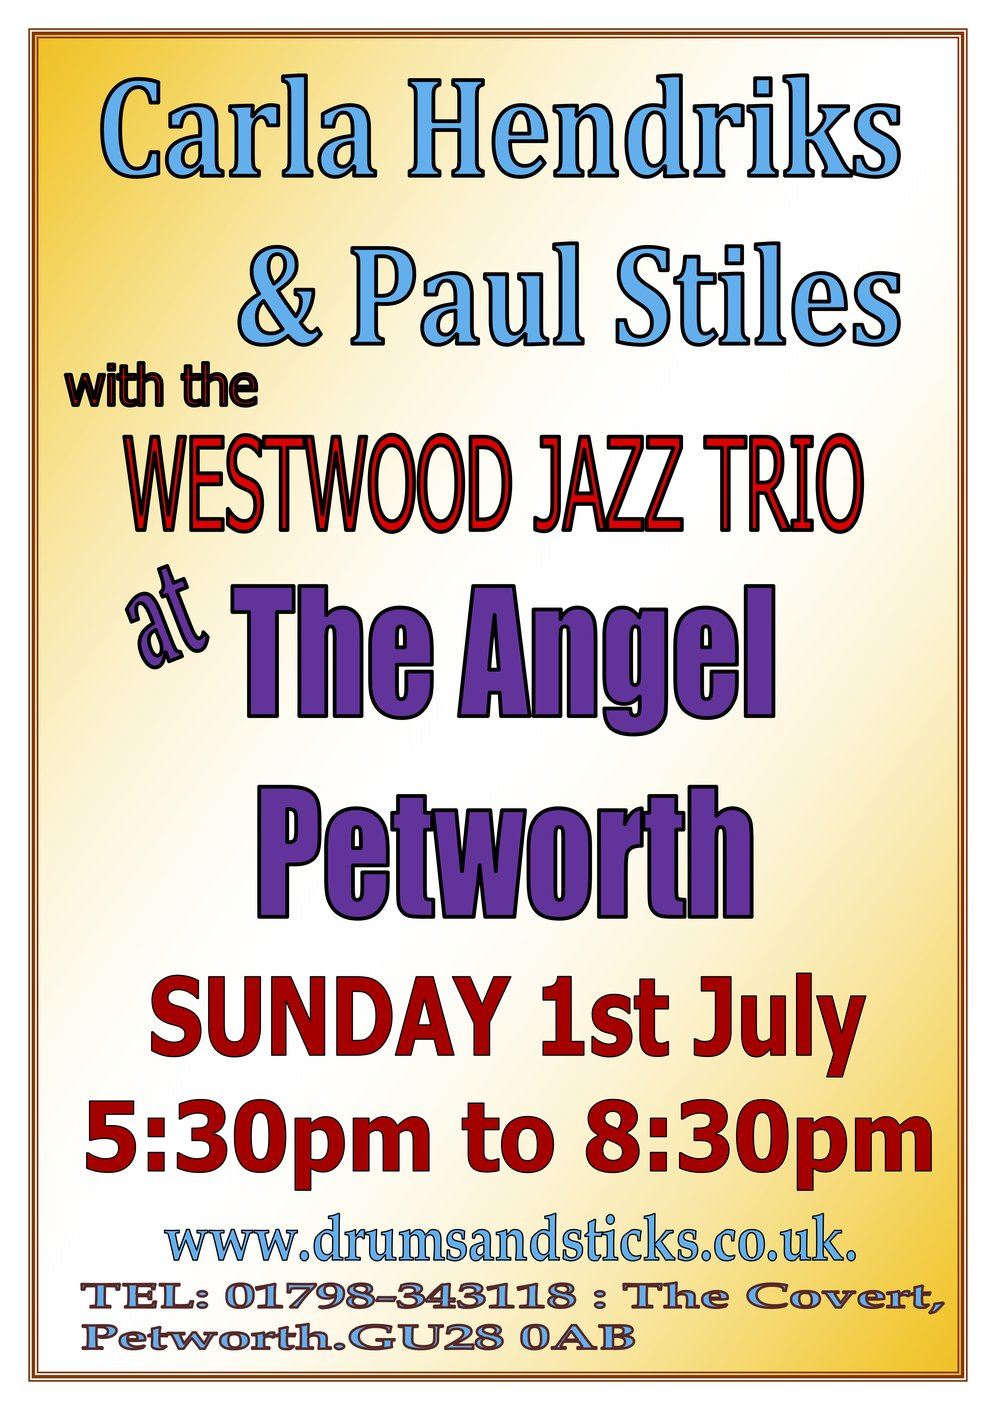 Carla Hendriks & Paul Stiles with the Westwood Jazz Trio